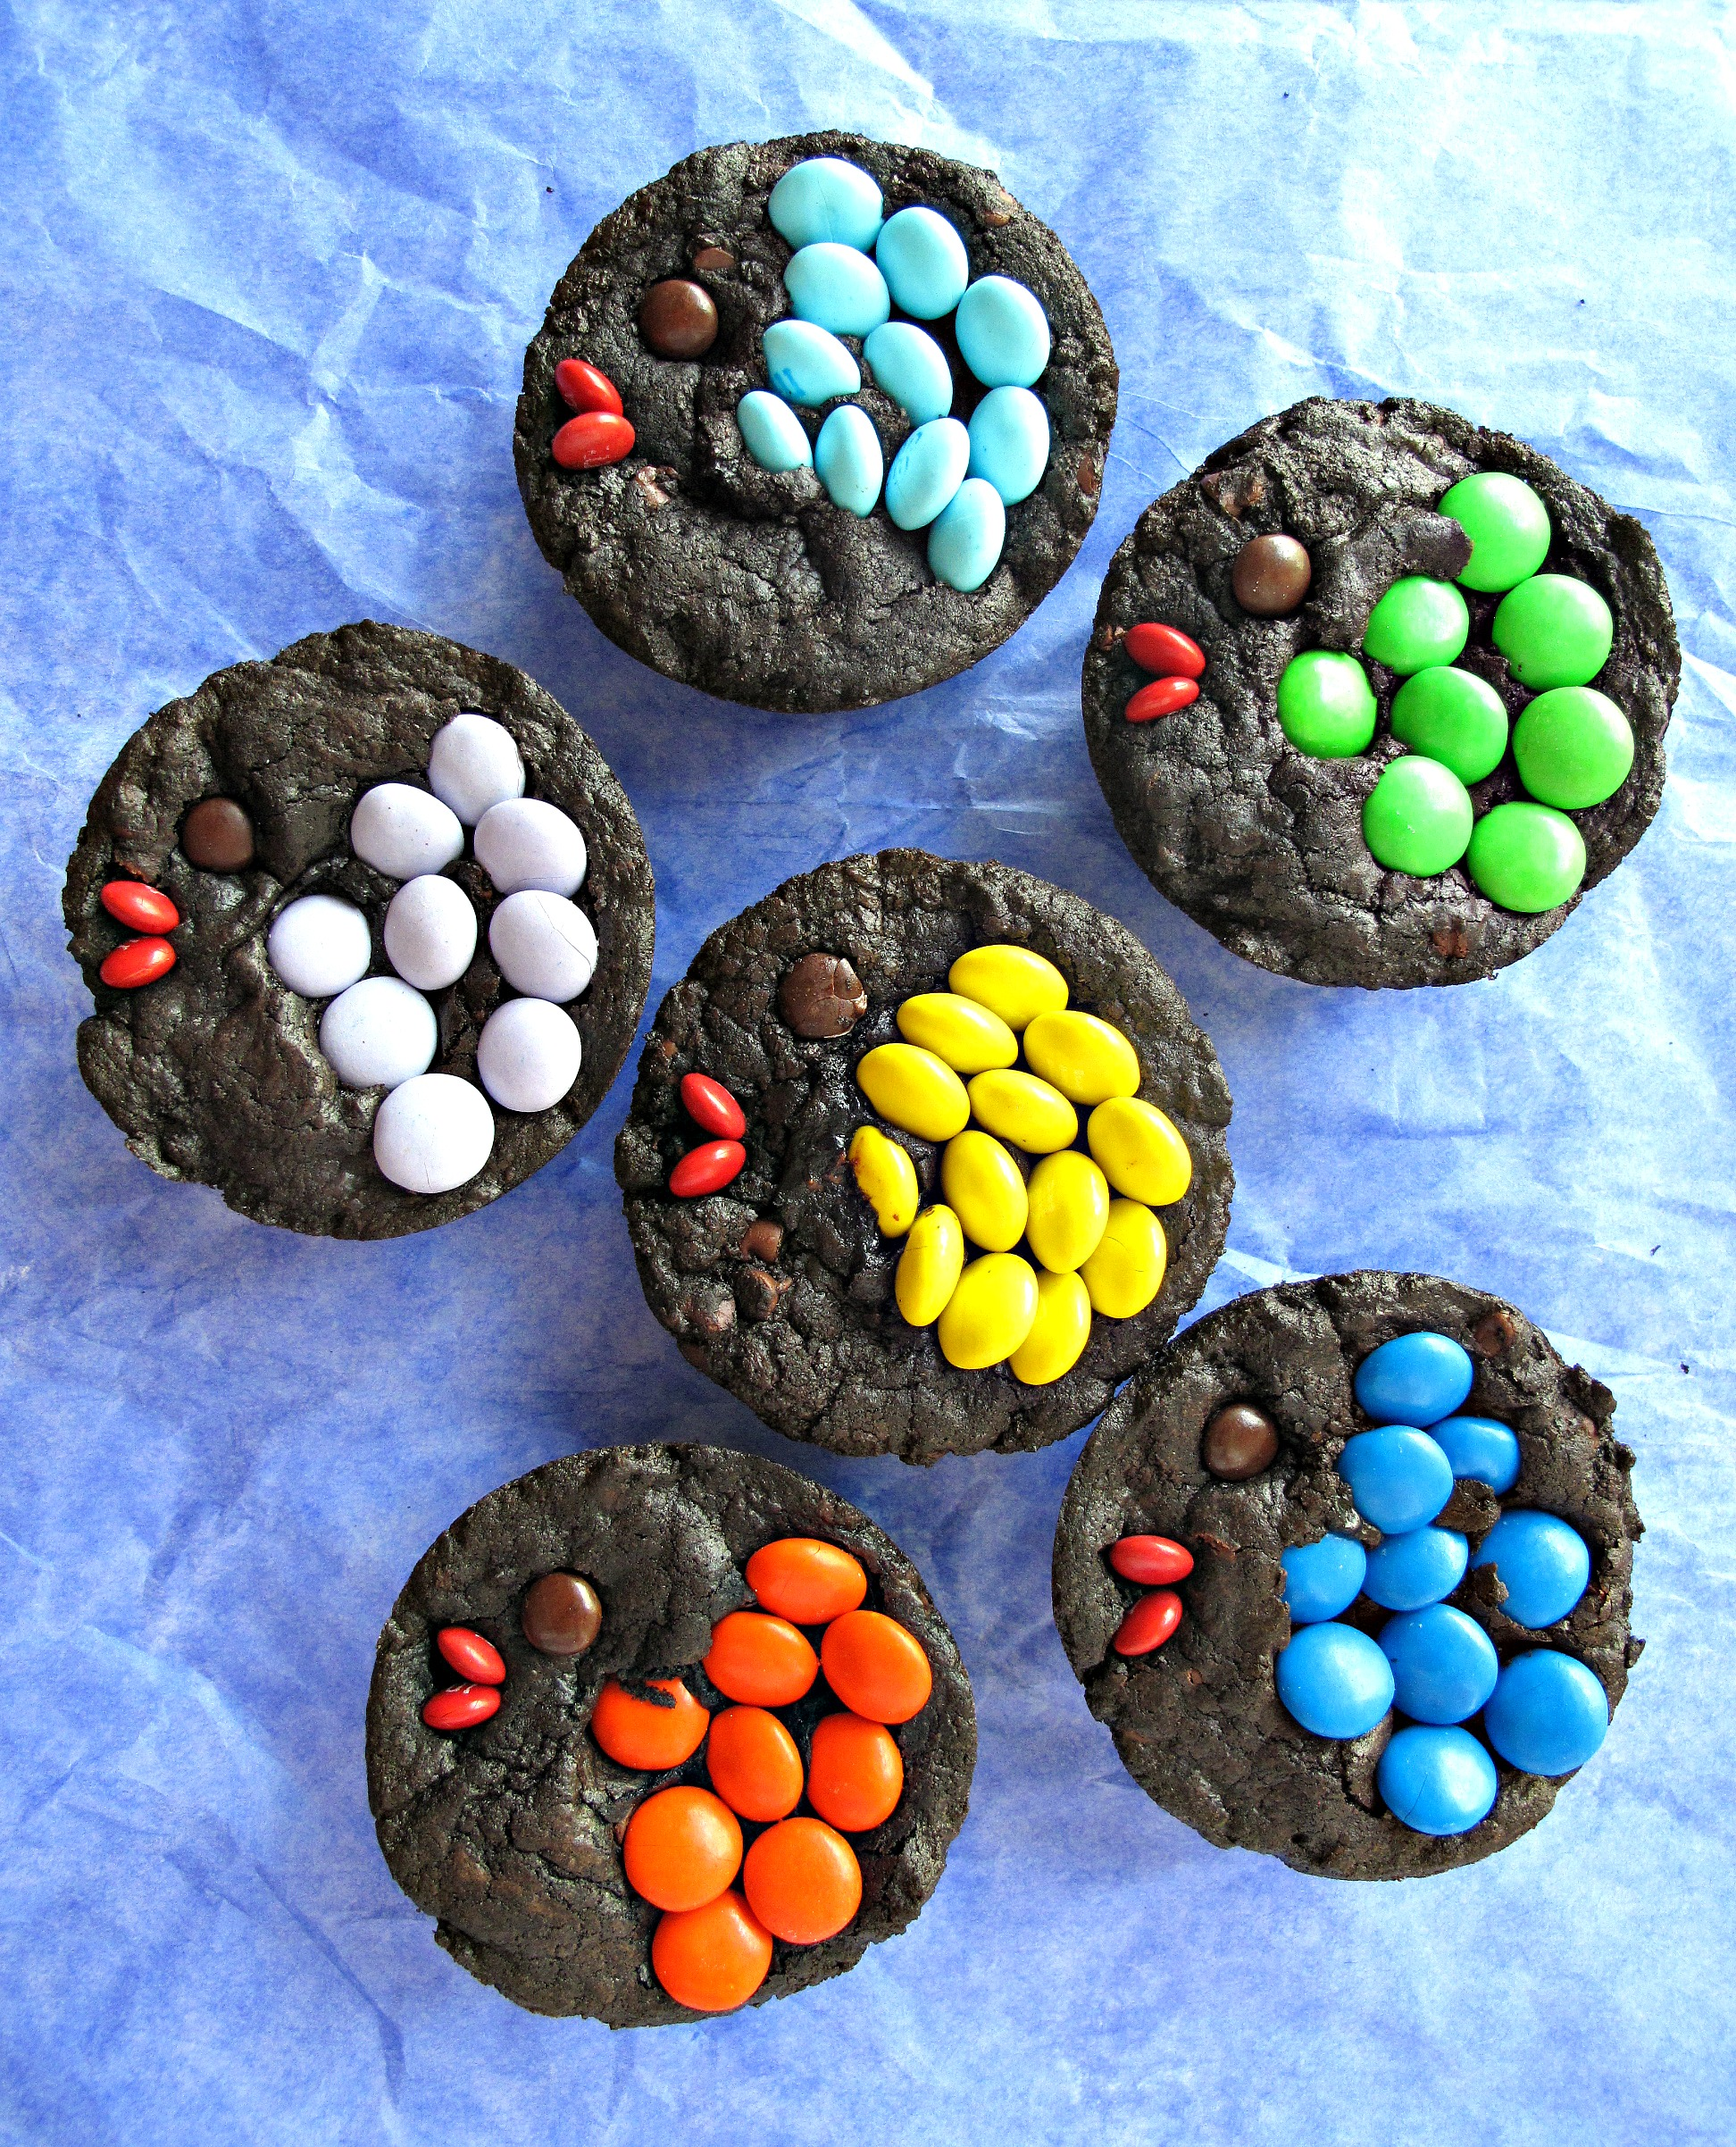 Decorated Fudge Brownies - The Monday Box